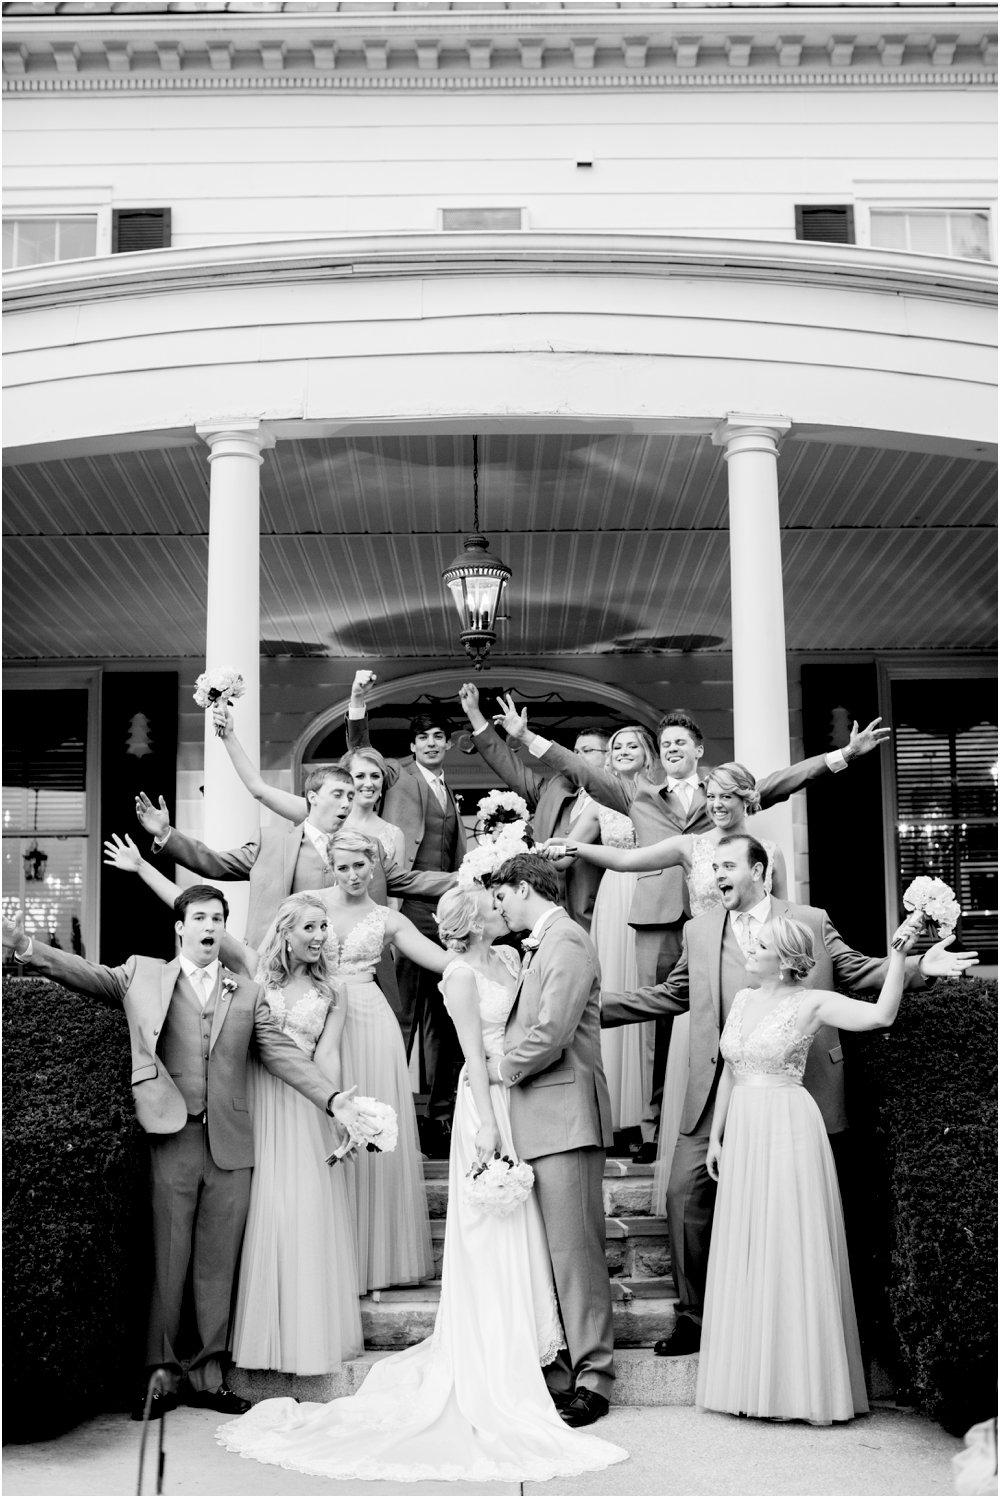 katelynn chris soper wedding valley country club town living radiant photogrpahy photos_0094.jpg